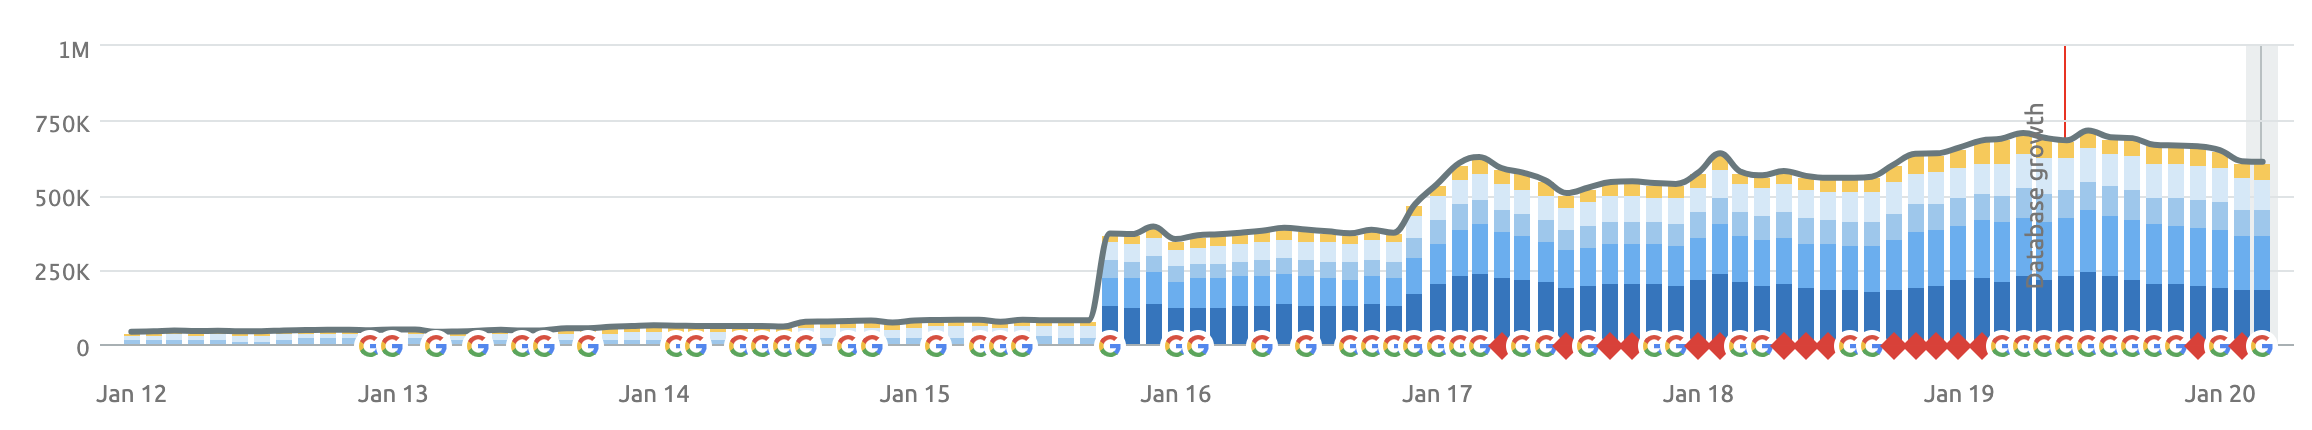 Organic Keyword Rank Growth